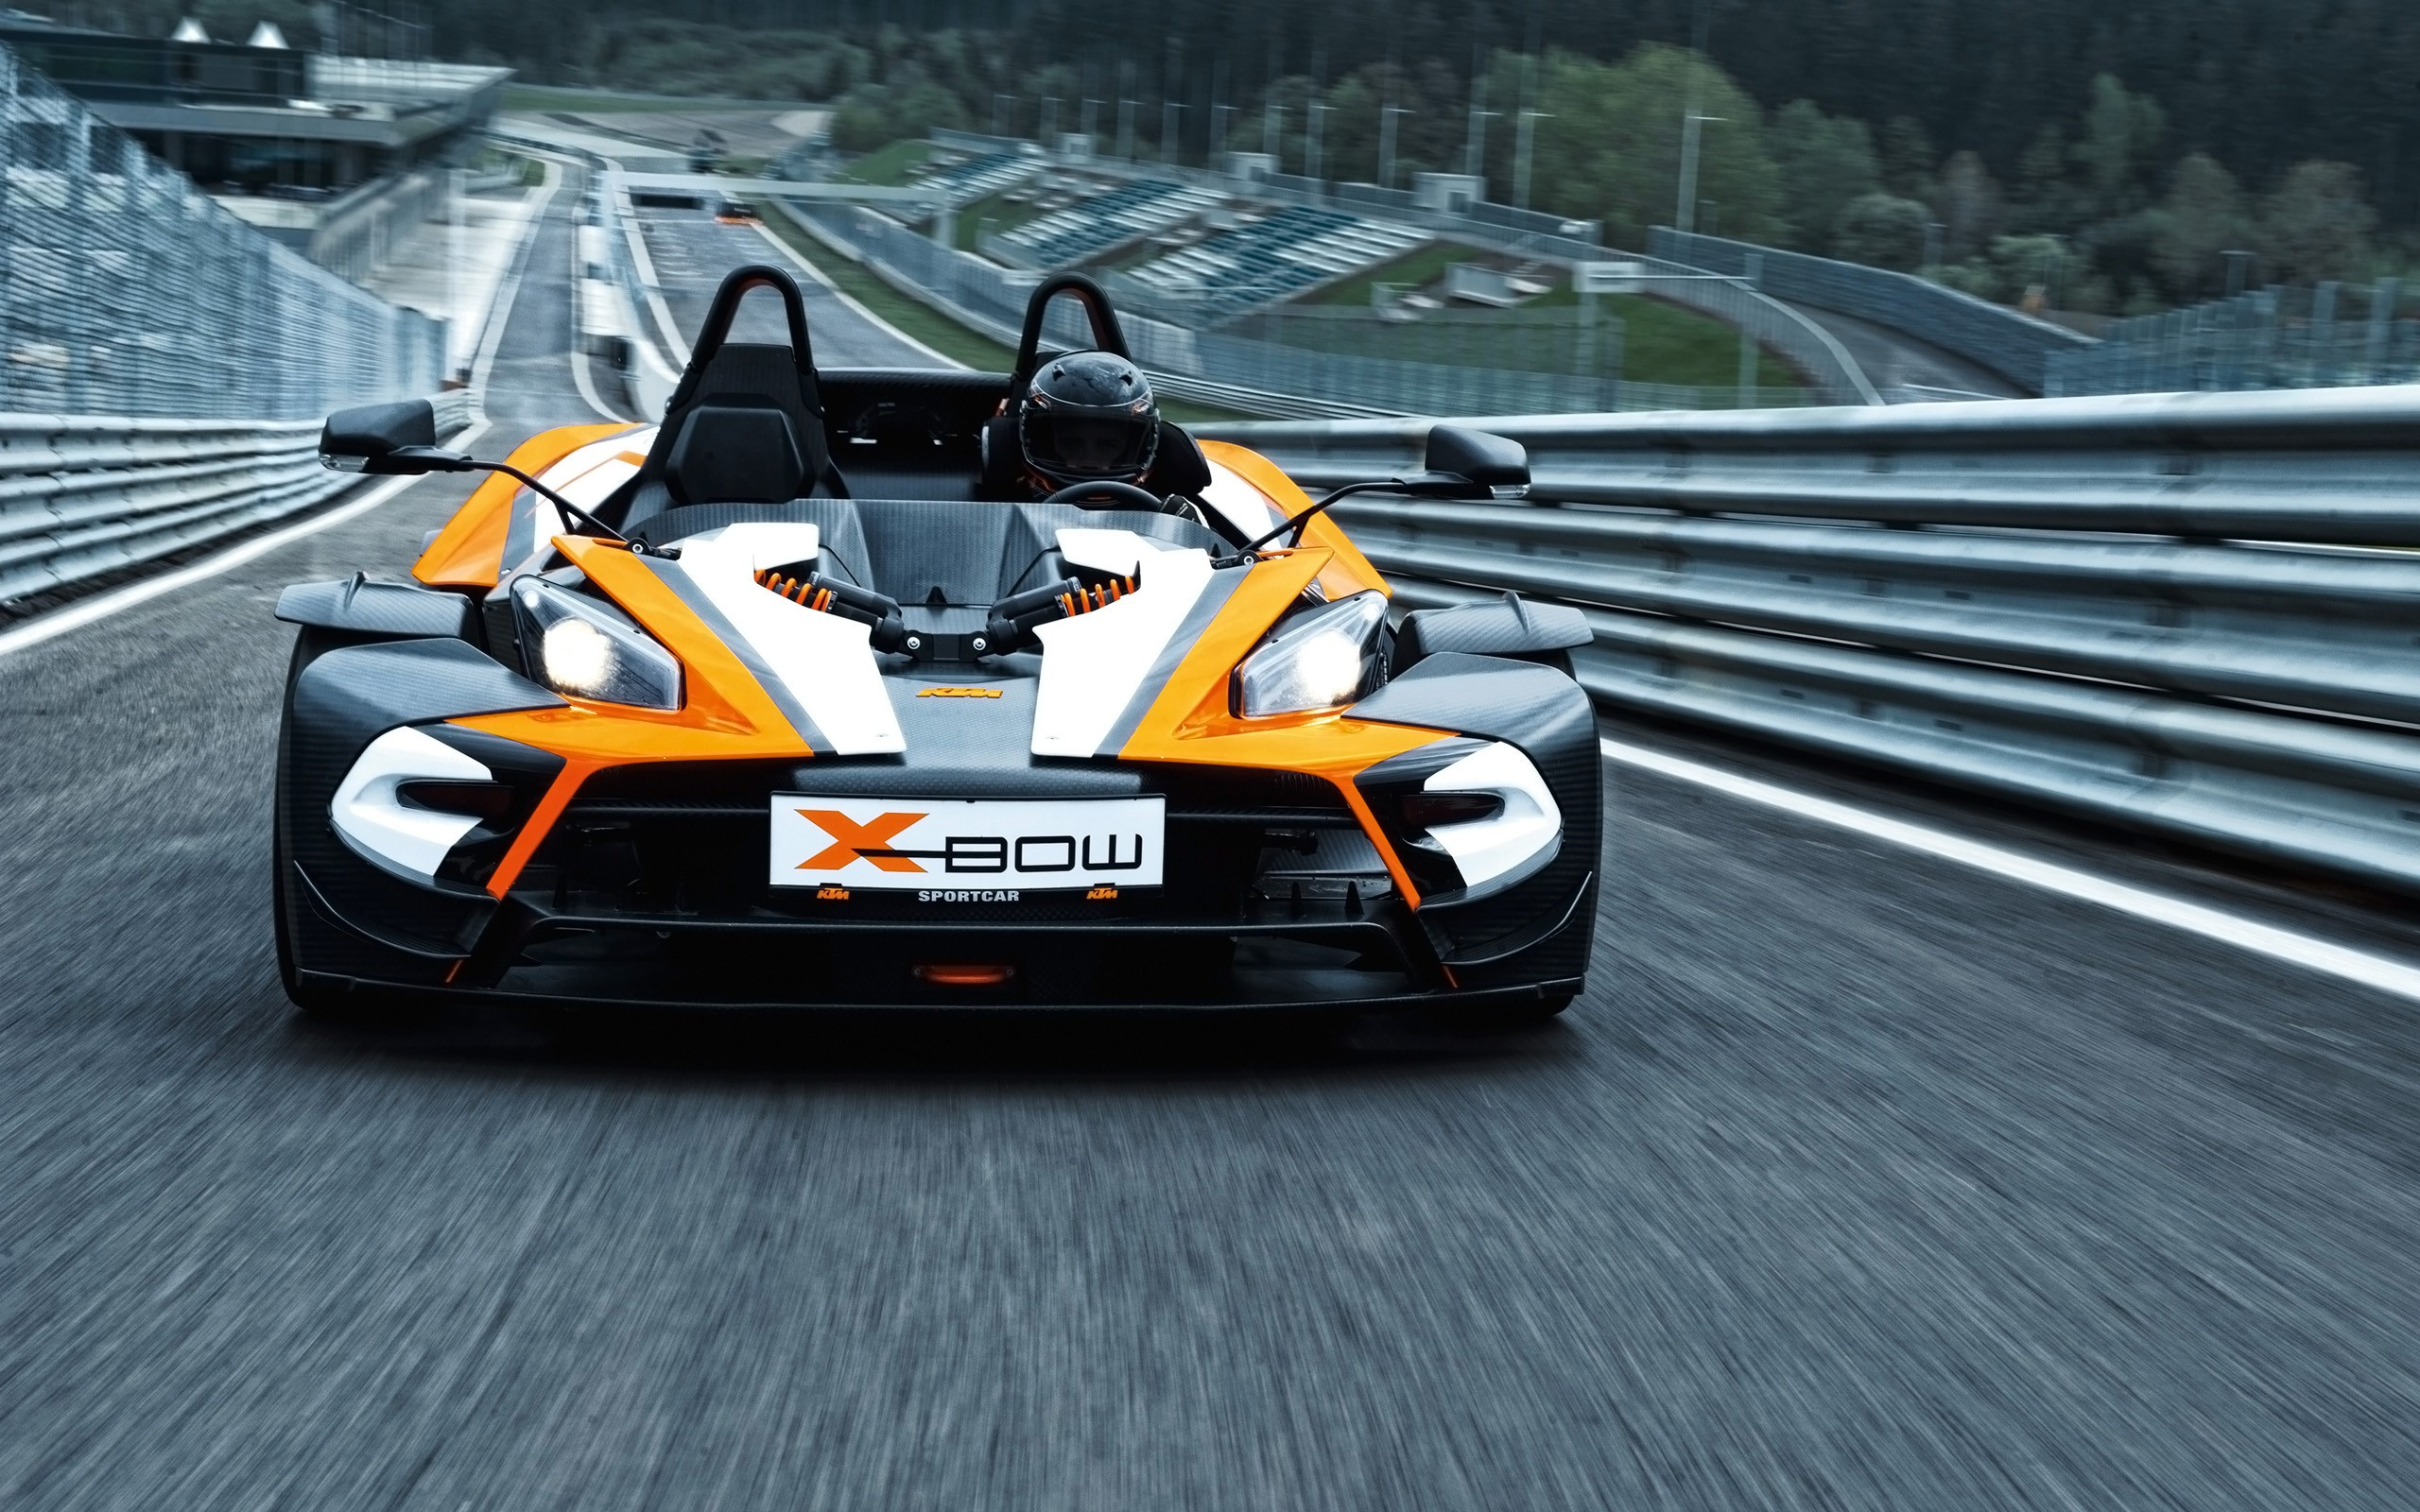 2014 ktm x bow r wallpaper hd car wallpapers id 4176. Black Bedroom Furniture Sets. Home Design Ideas